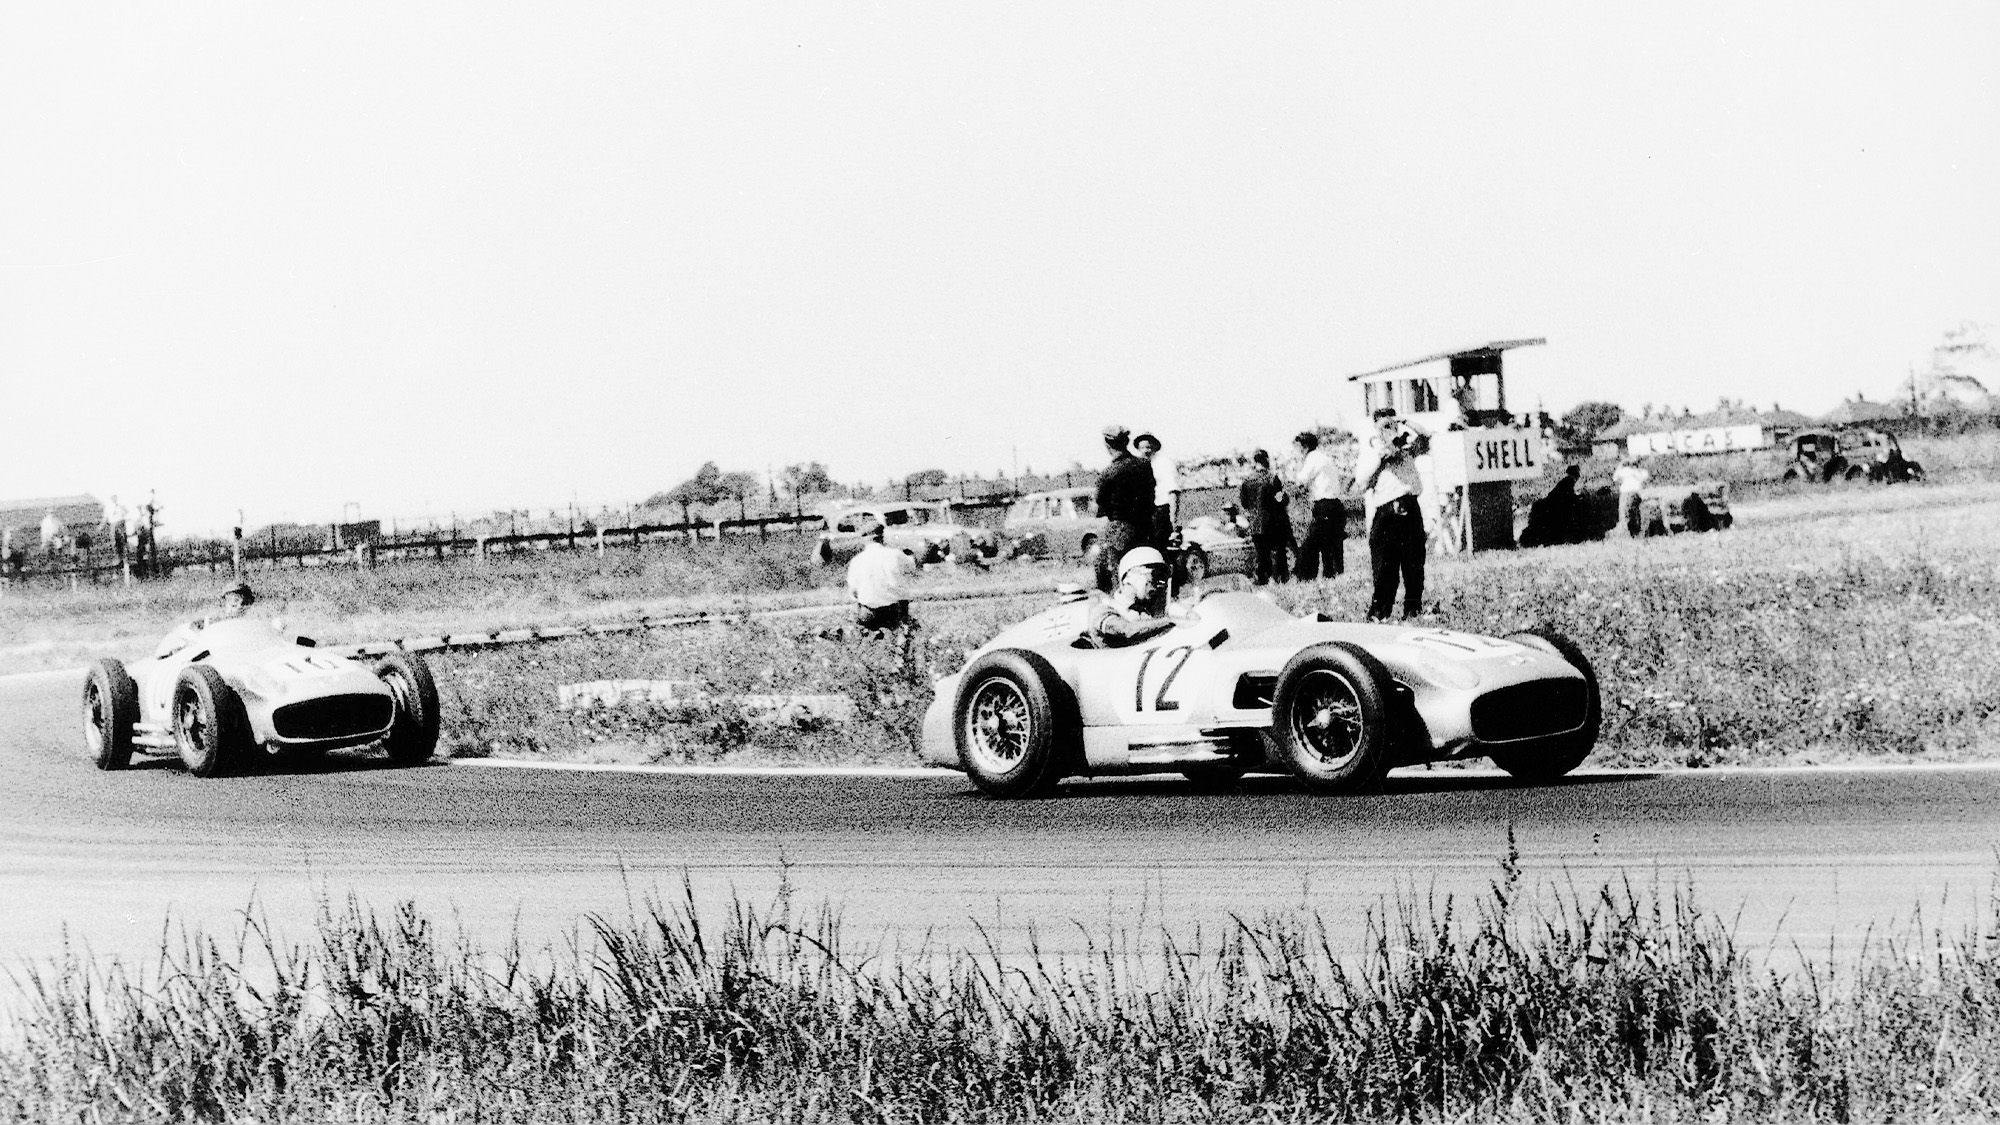 Stirling Moss leads Juan Manuel Fangio in Mercedes W196 R cars at the 1955 F1 British Grand Prix at Aintree